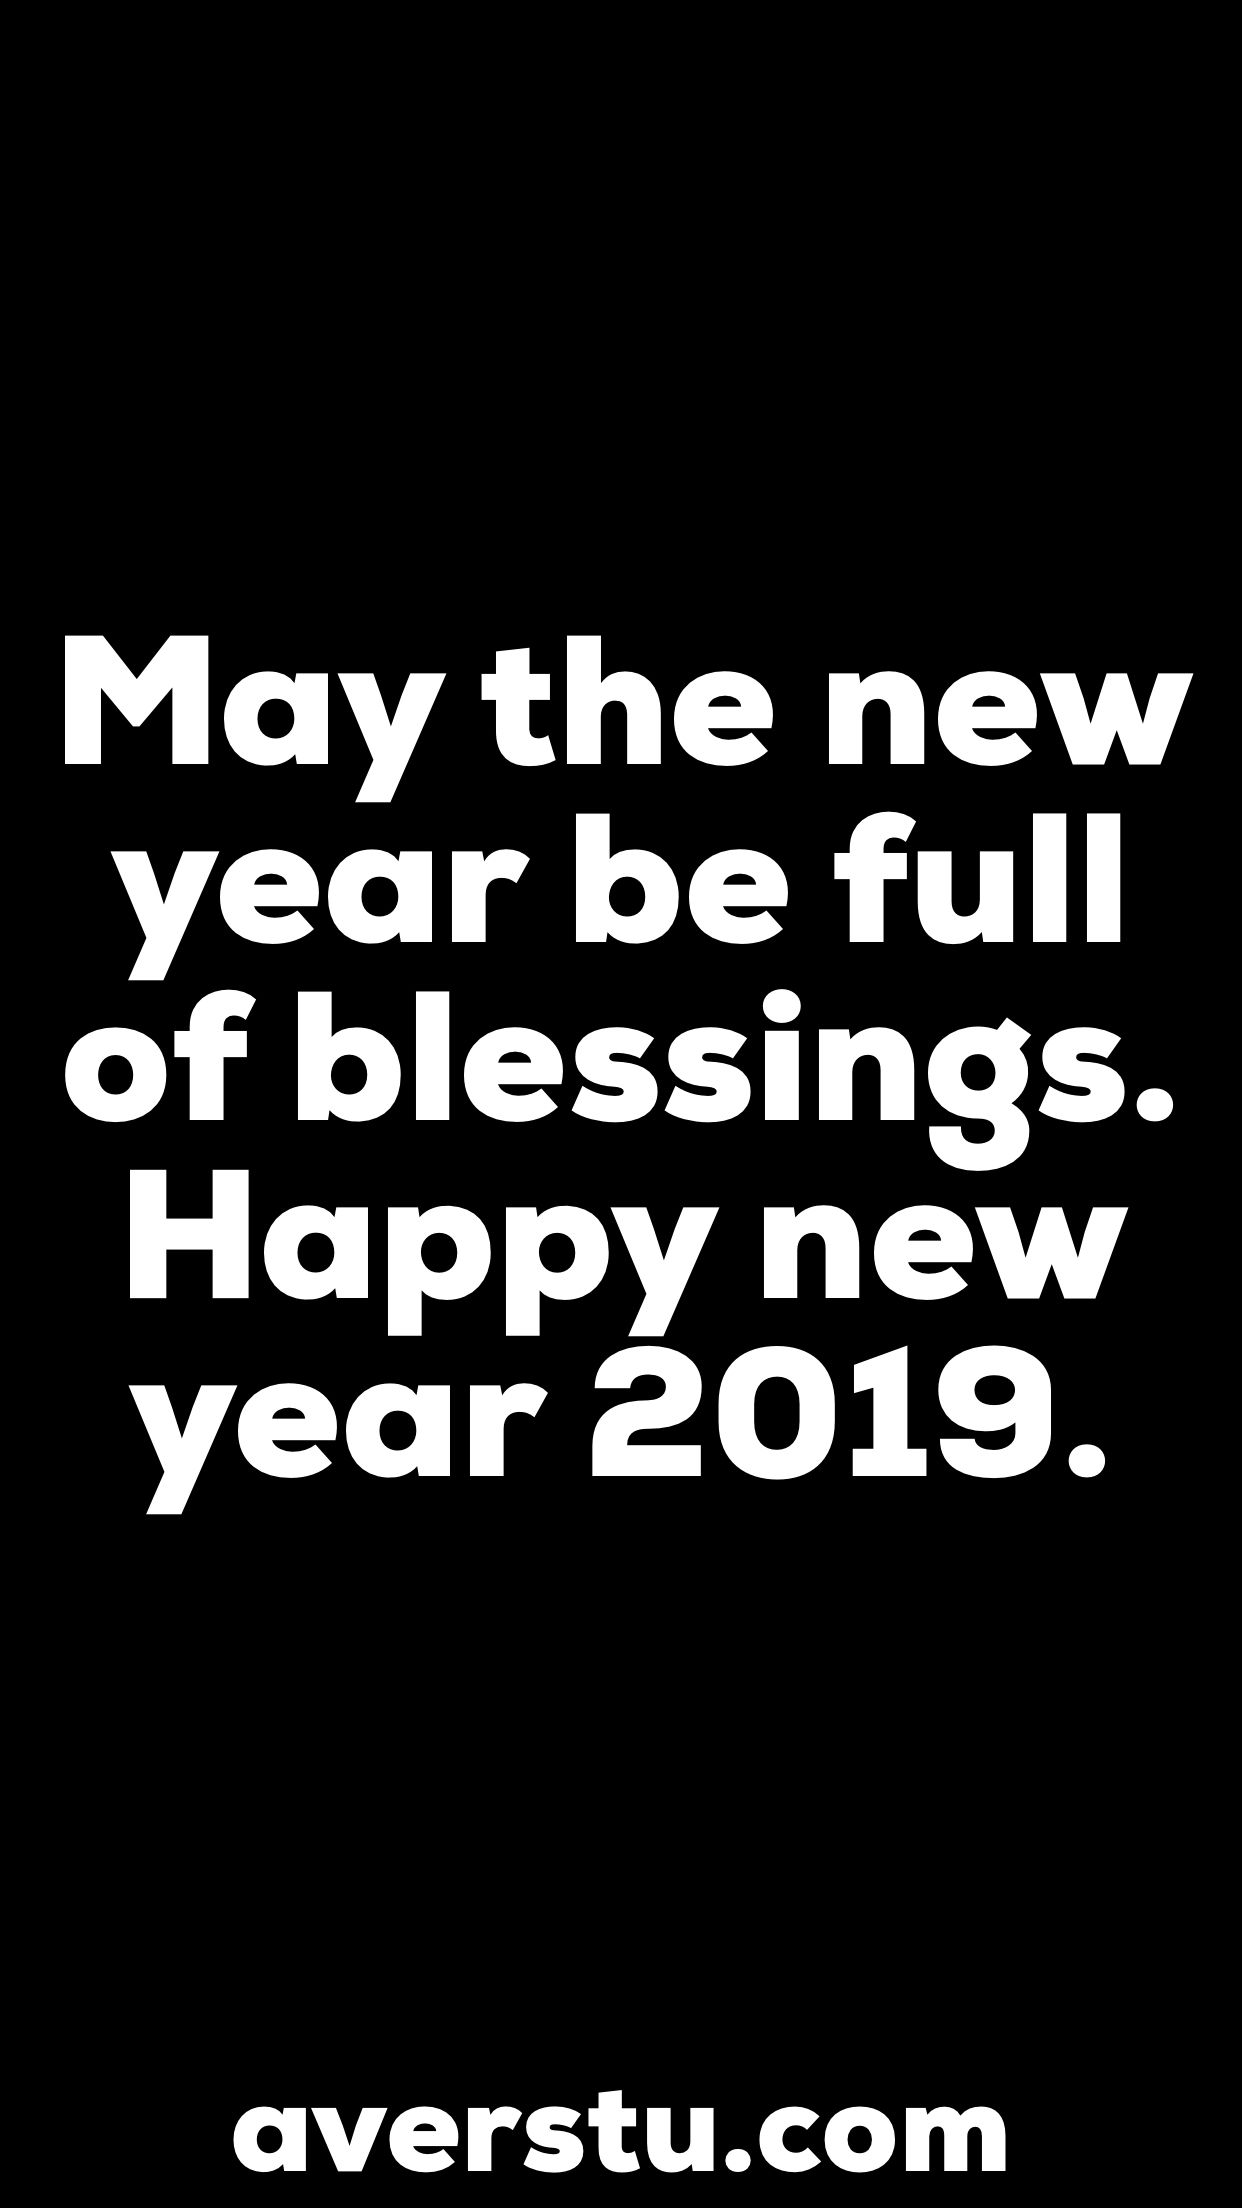 Happy New Year In Advance 2019 Quotes Happy New Year 2019 Happy